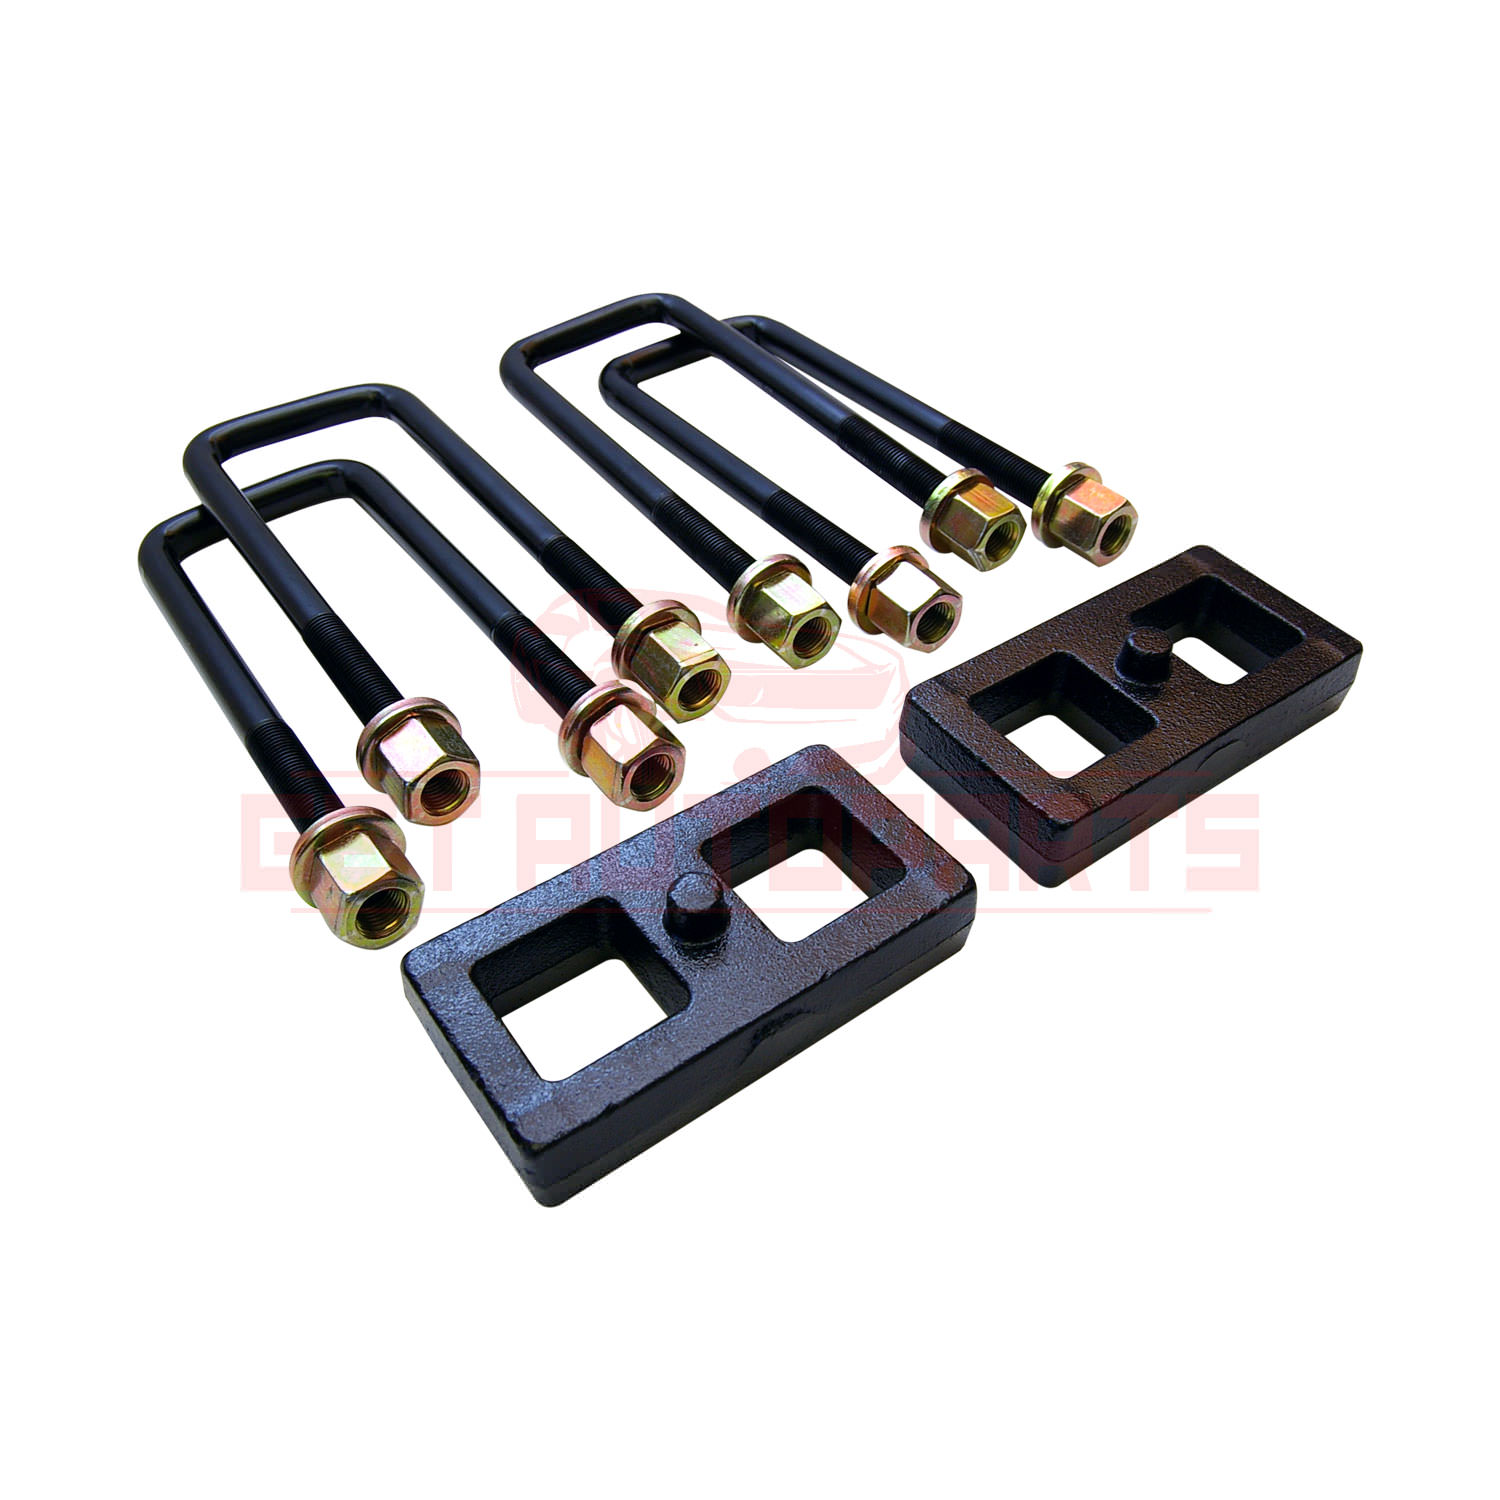 """ReadyLift Suspension Leaf Spring Block Kit Rear 1"""" for Toyota Tacoma 1995-2019 part in Leaf Springs category"""